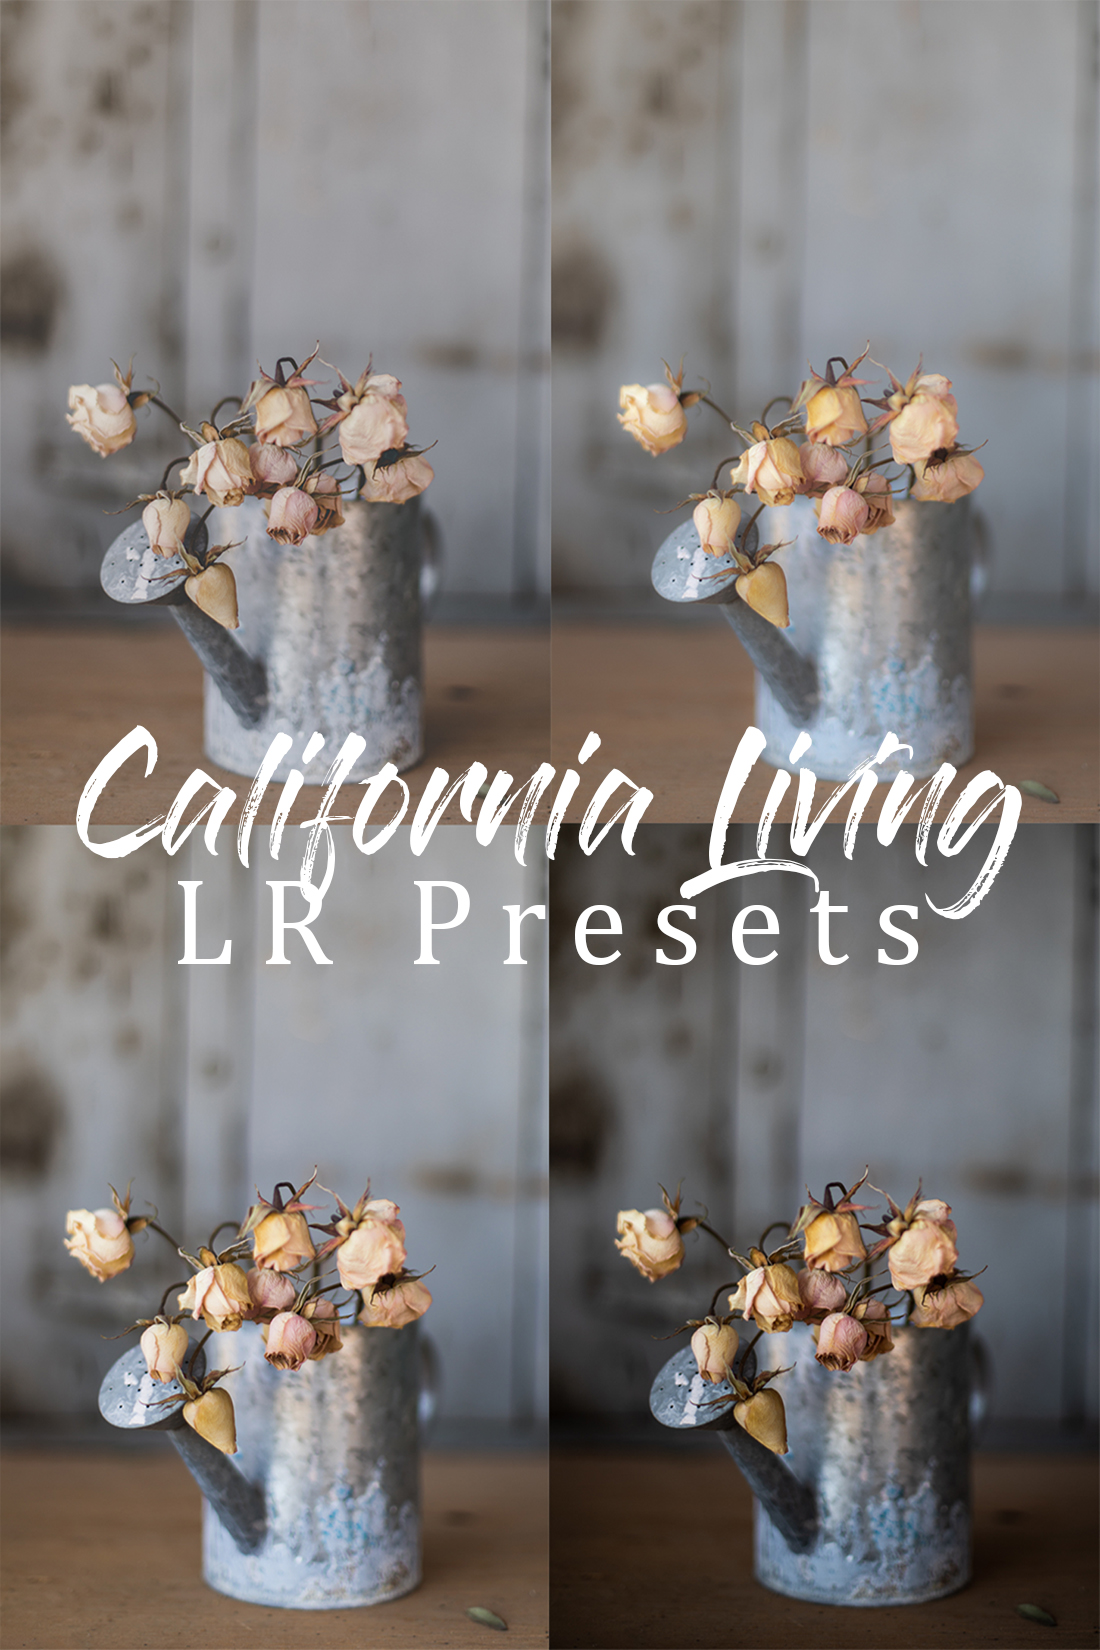 California Living LR Presets